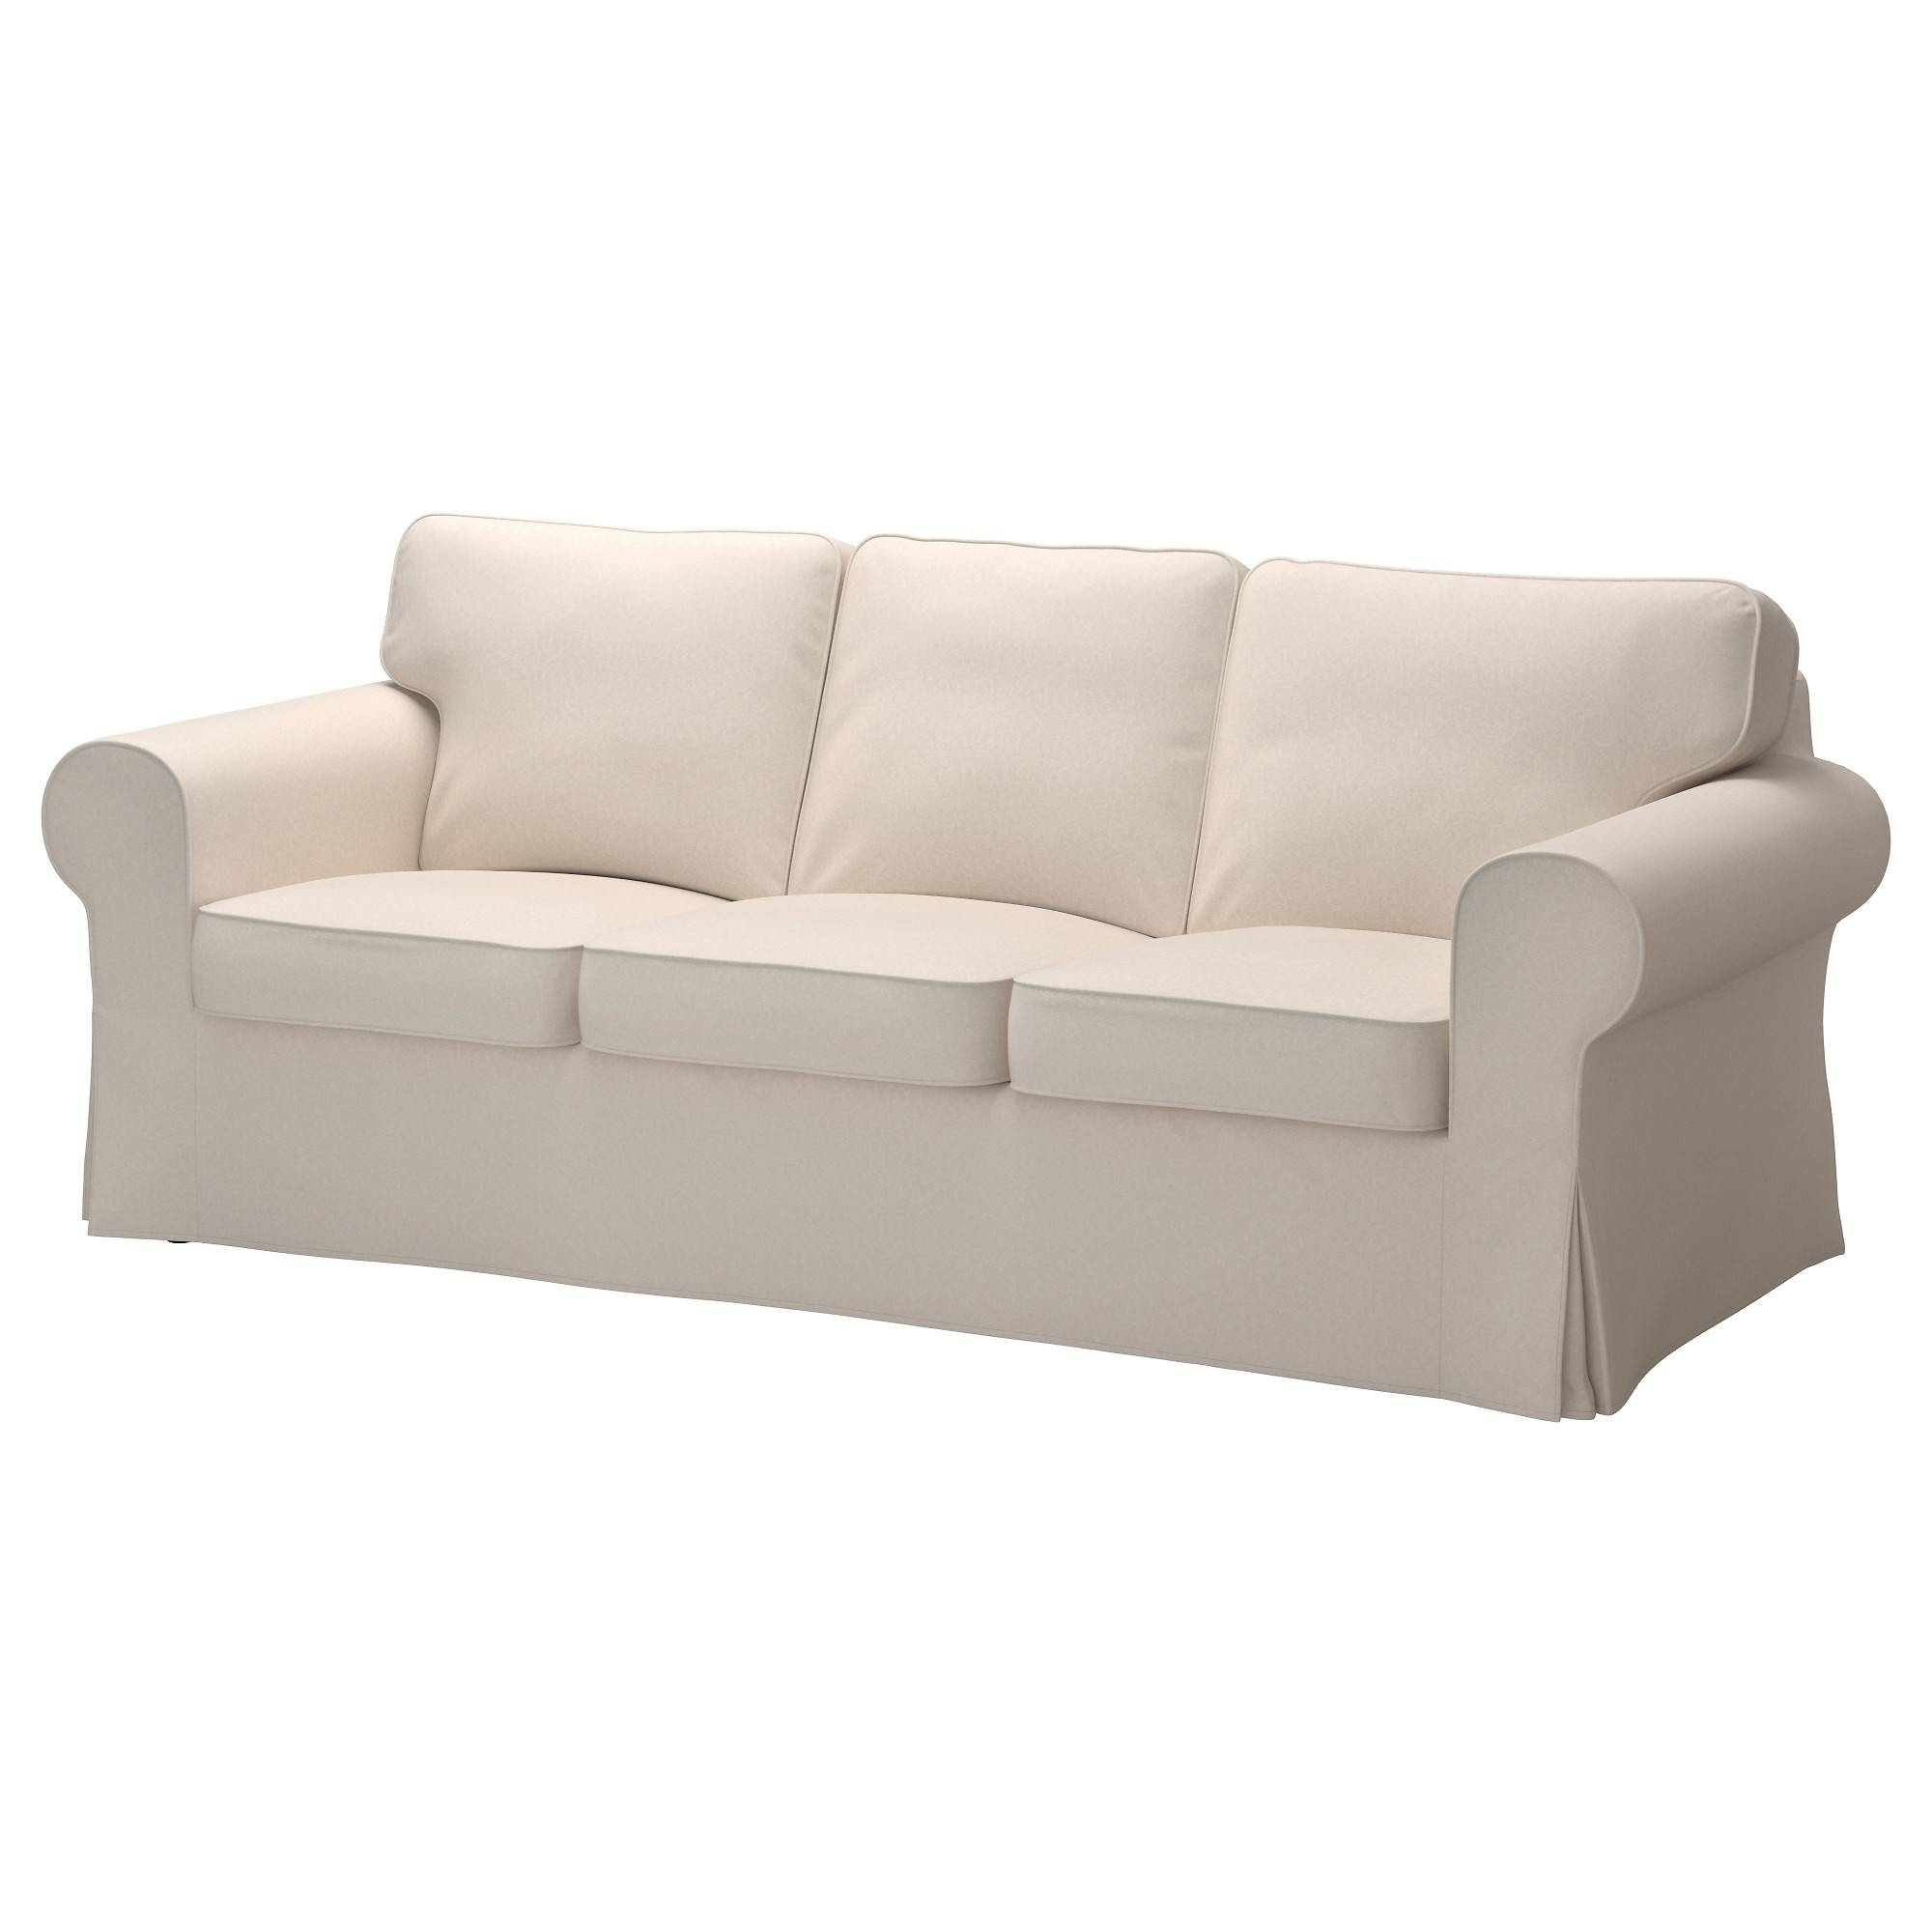 Ektorp Sofa - Vittaryd White - Ikea in 6 Foot Sofas (Image 7 of 30)